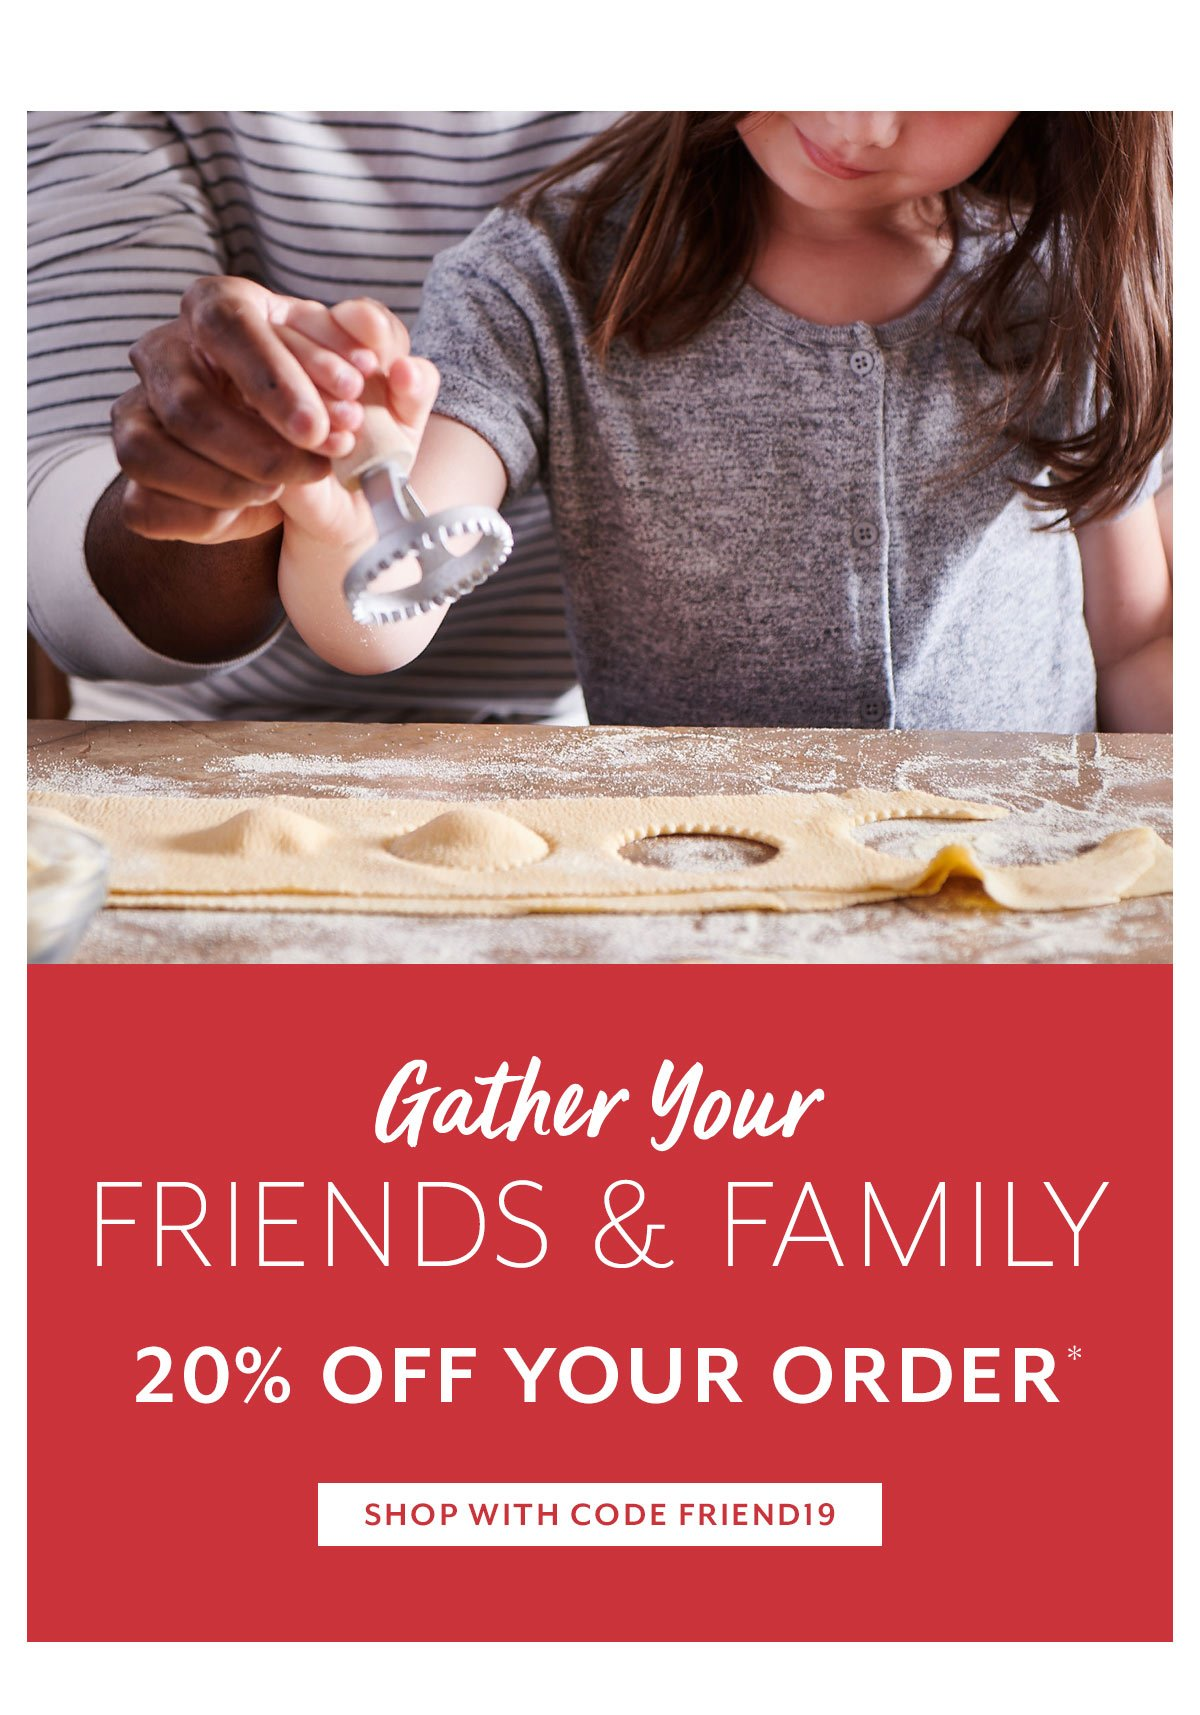 Friends & Family • Shop with Code FRIEND19